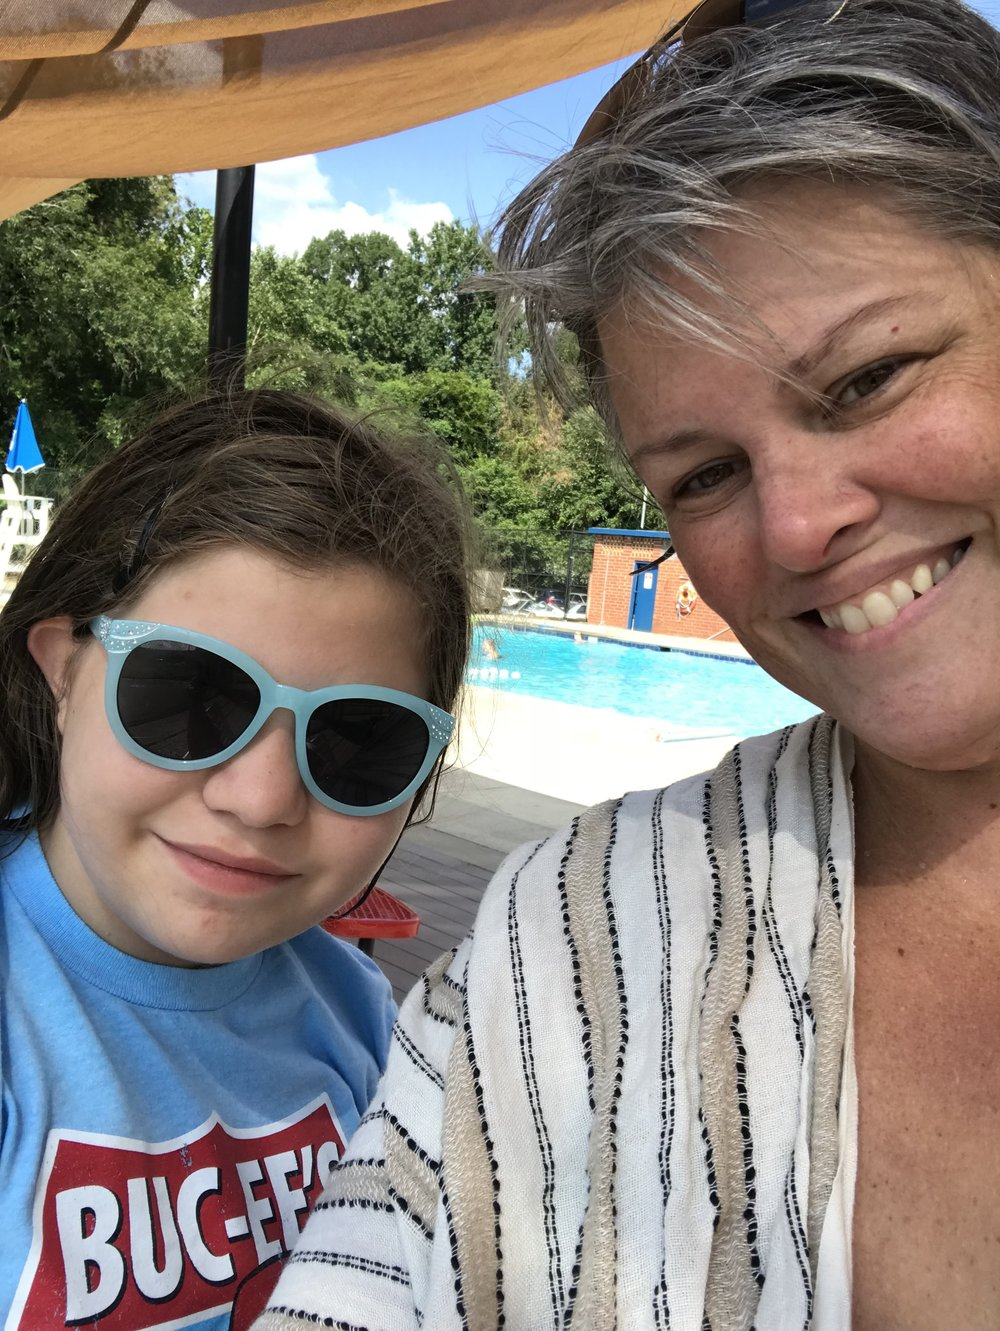 August, 2018. The child and I on a happy day of swimming.